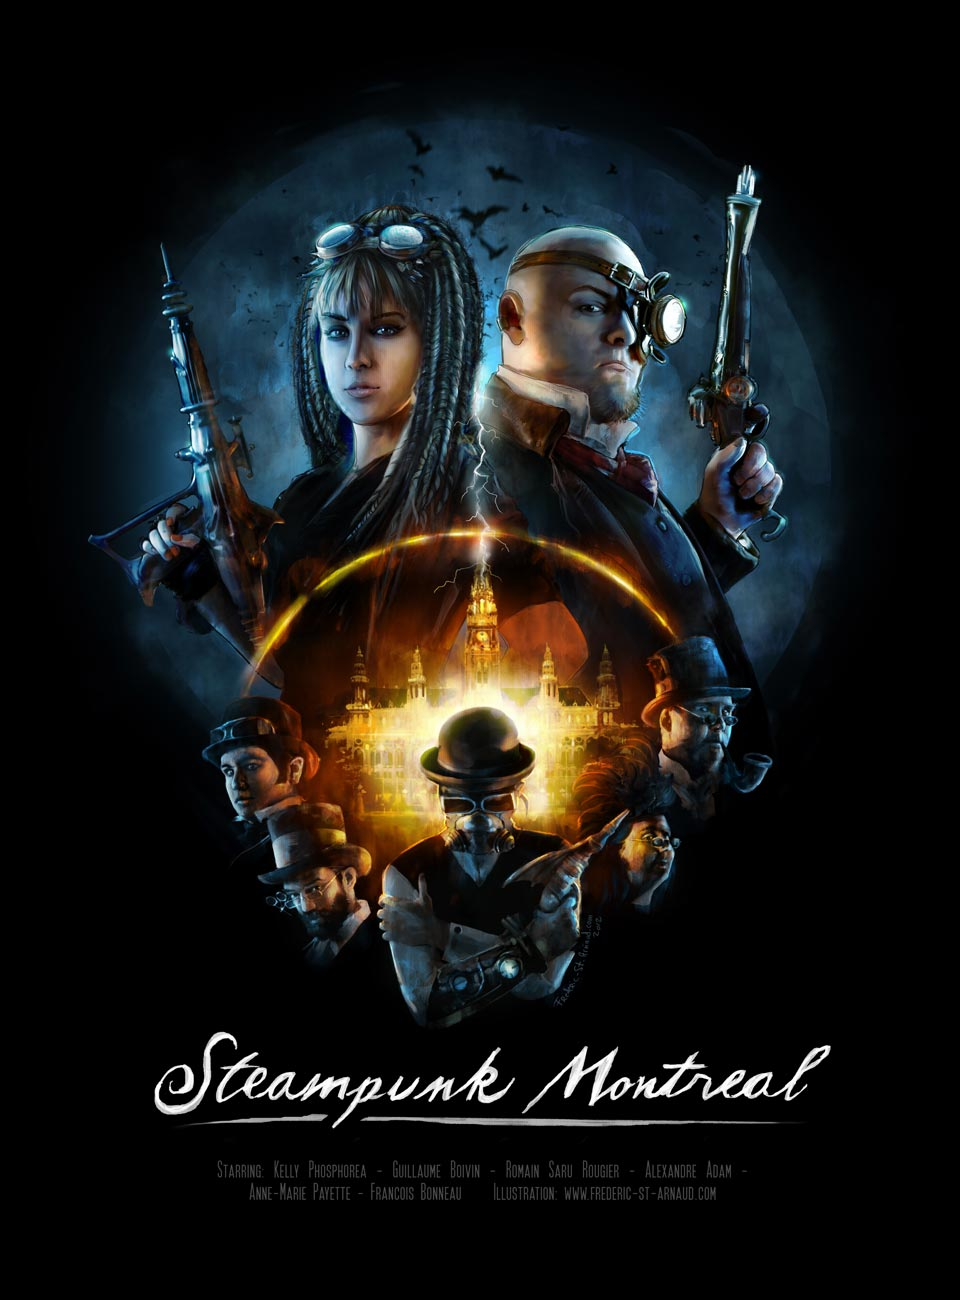 Steampunk Montreal